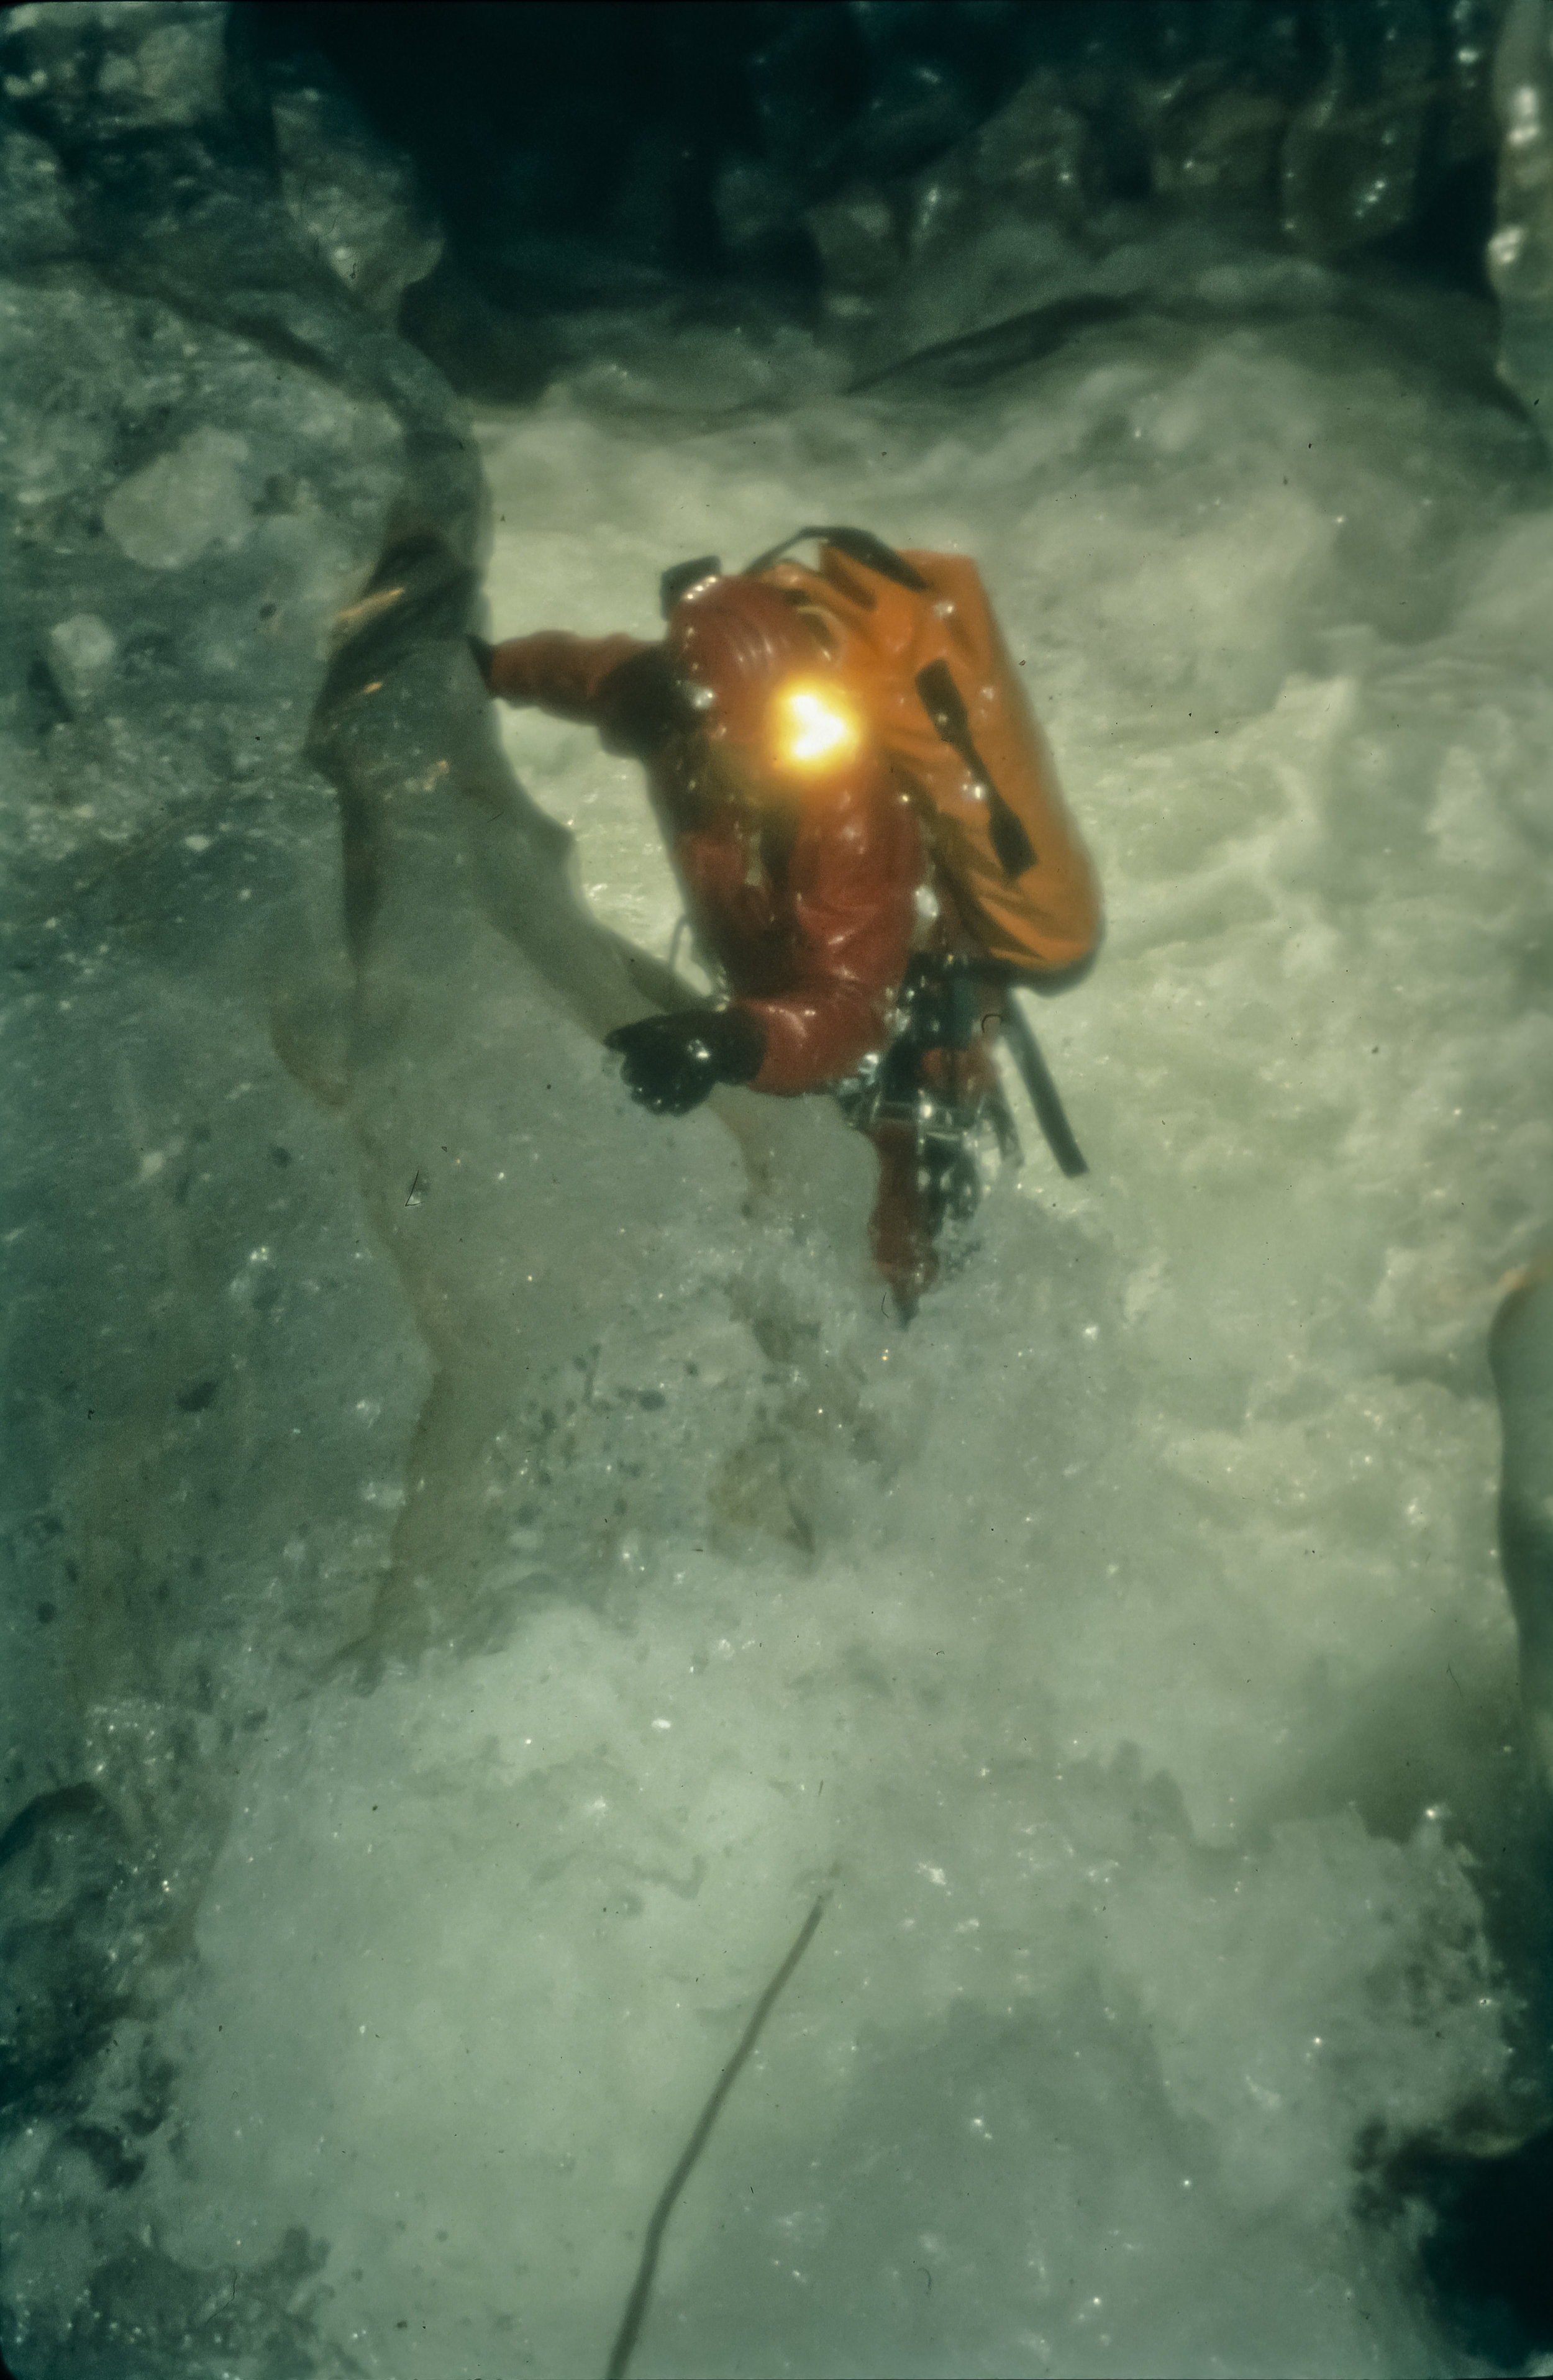 "The National Geographic caption for this slide read ""Torrent from a freak April storm erupts into the Upper Gorge, below which seven team members had camped. Getting his grip with rubberized gloves, Noel Sloan fights thundering white water six feet above normal"". Photo by U. S. Deep Caving Team/Wes Skiles."